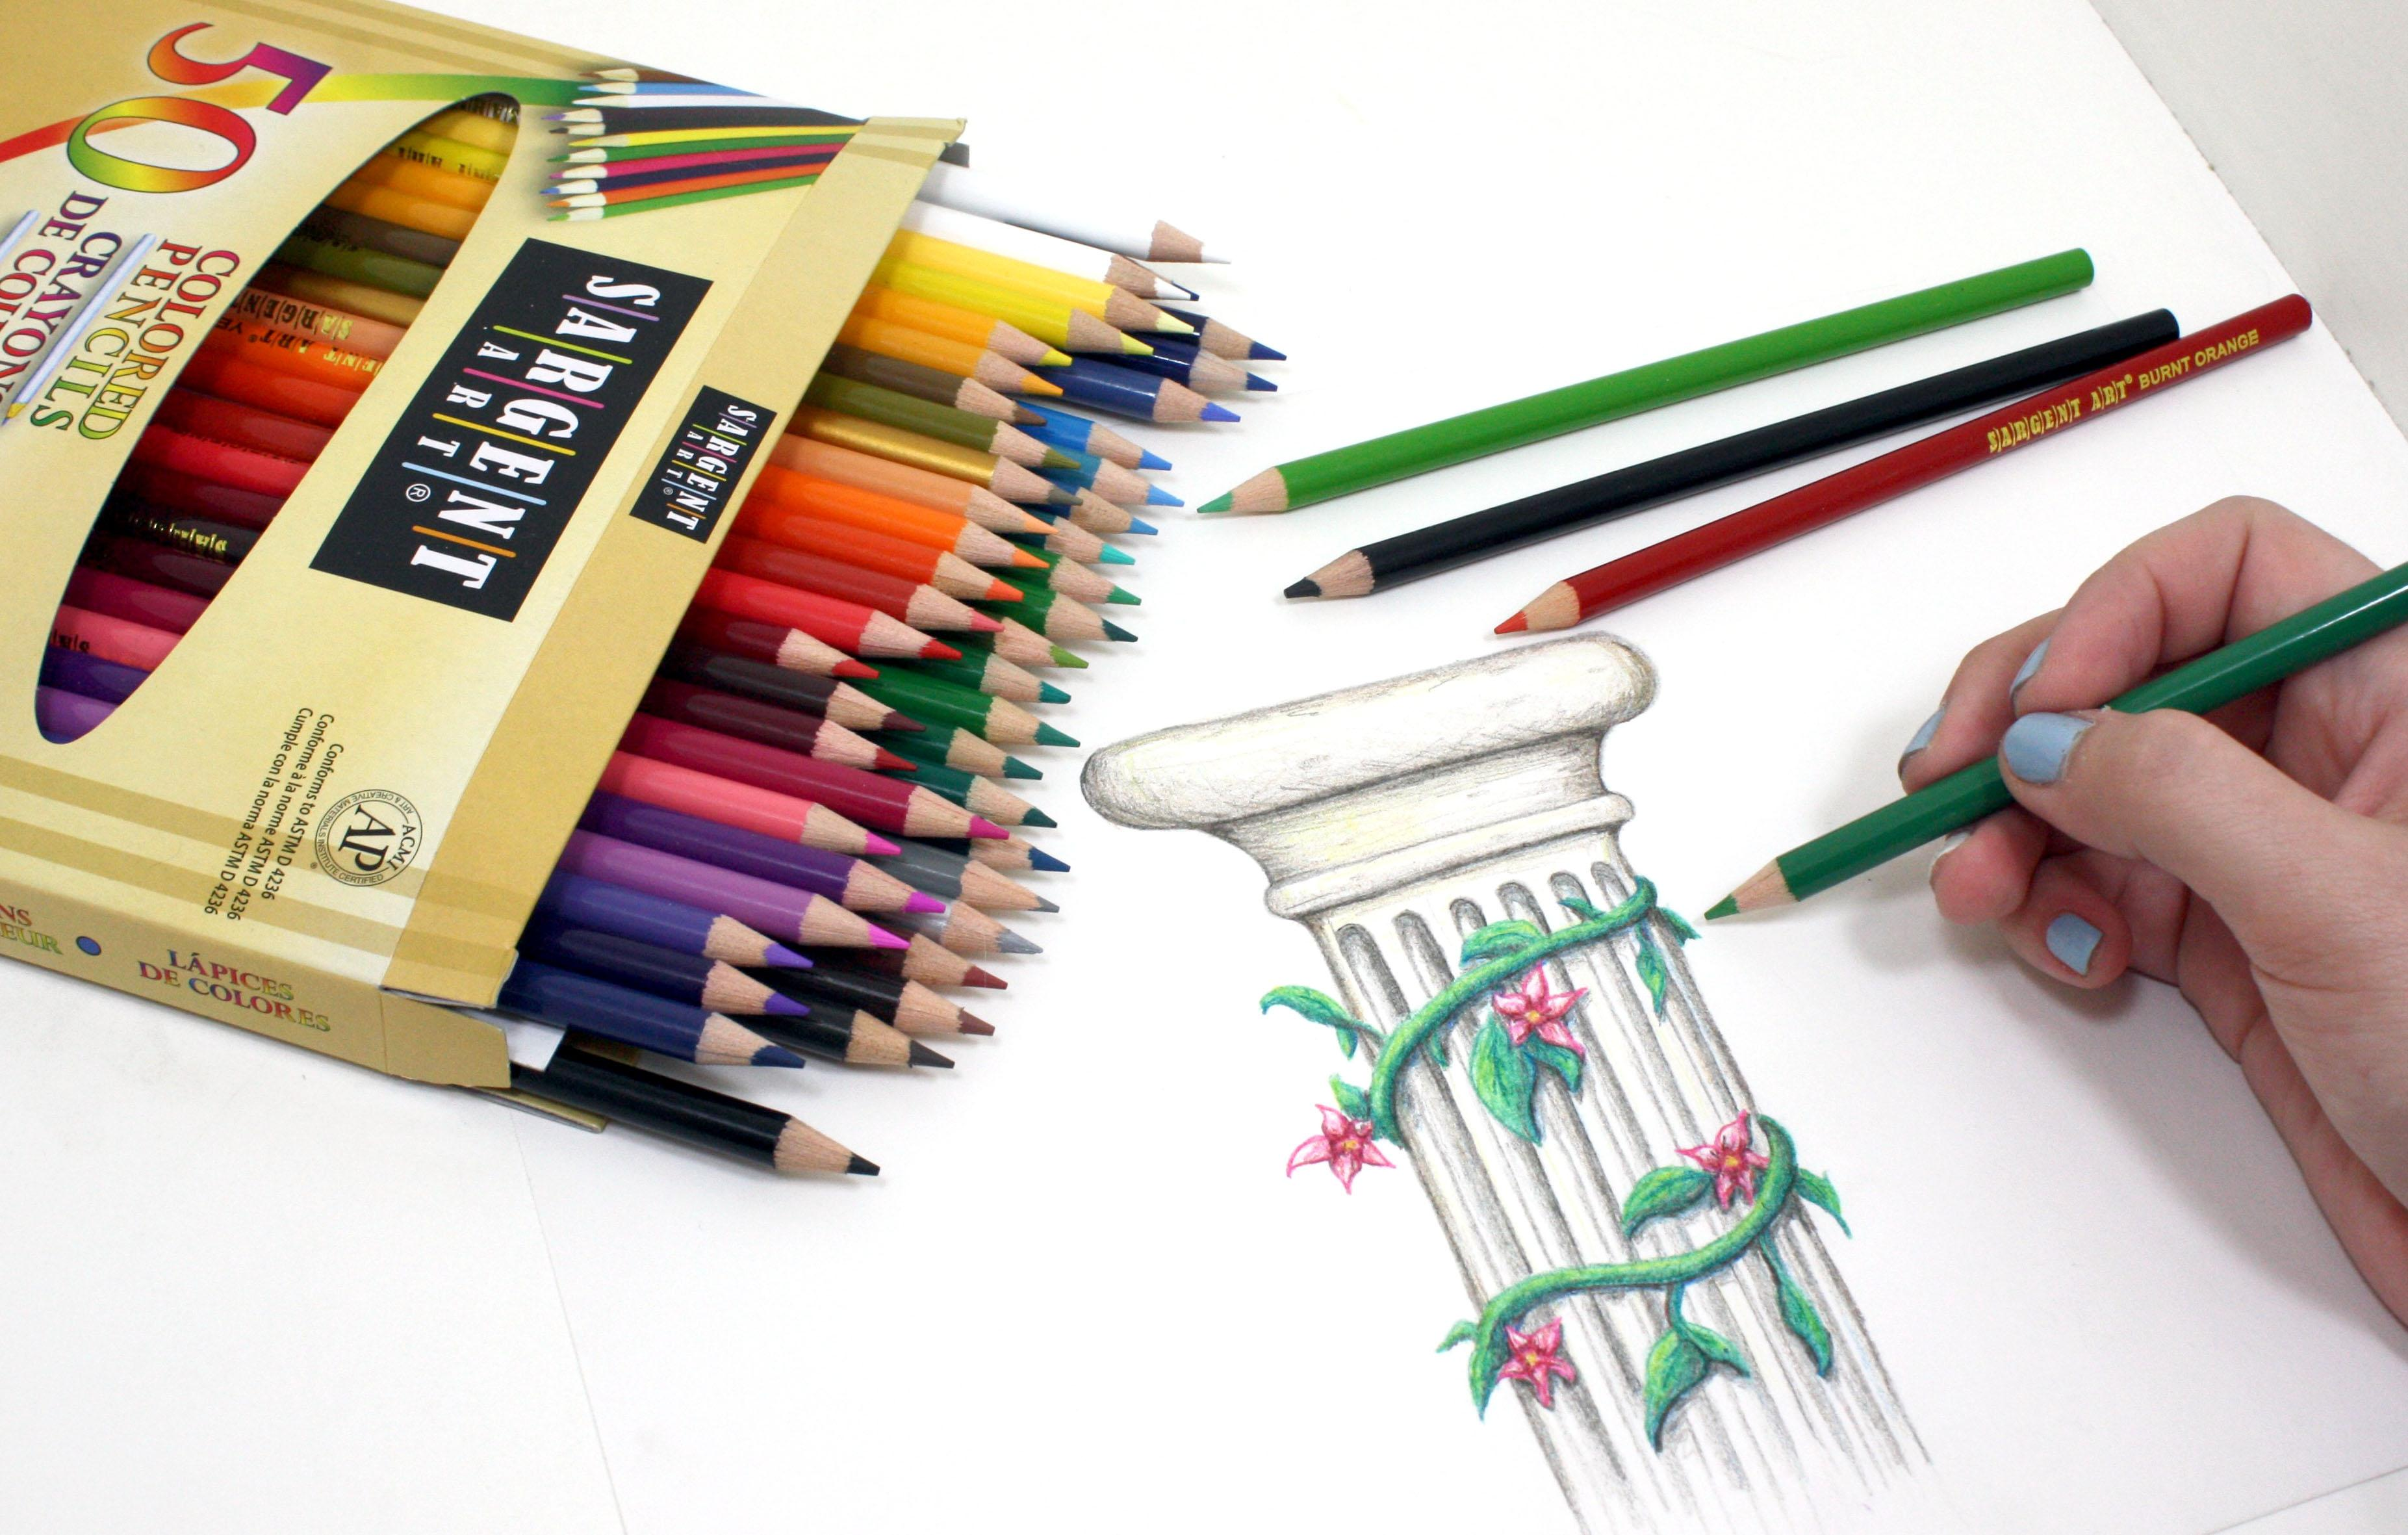 Art colored pencils - View Larger